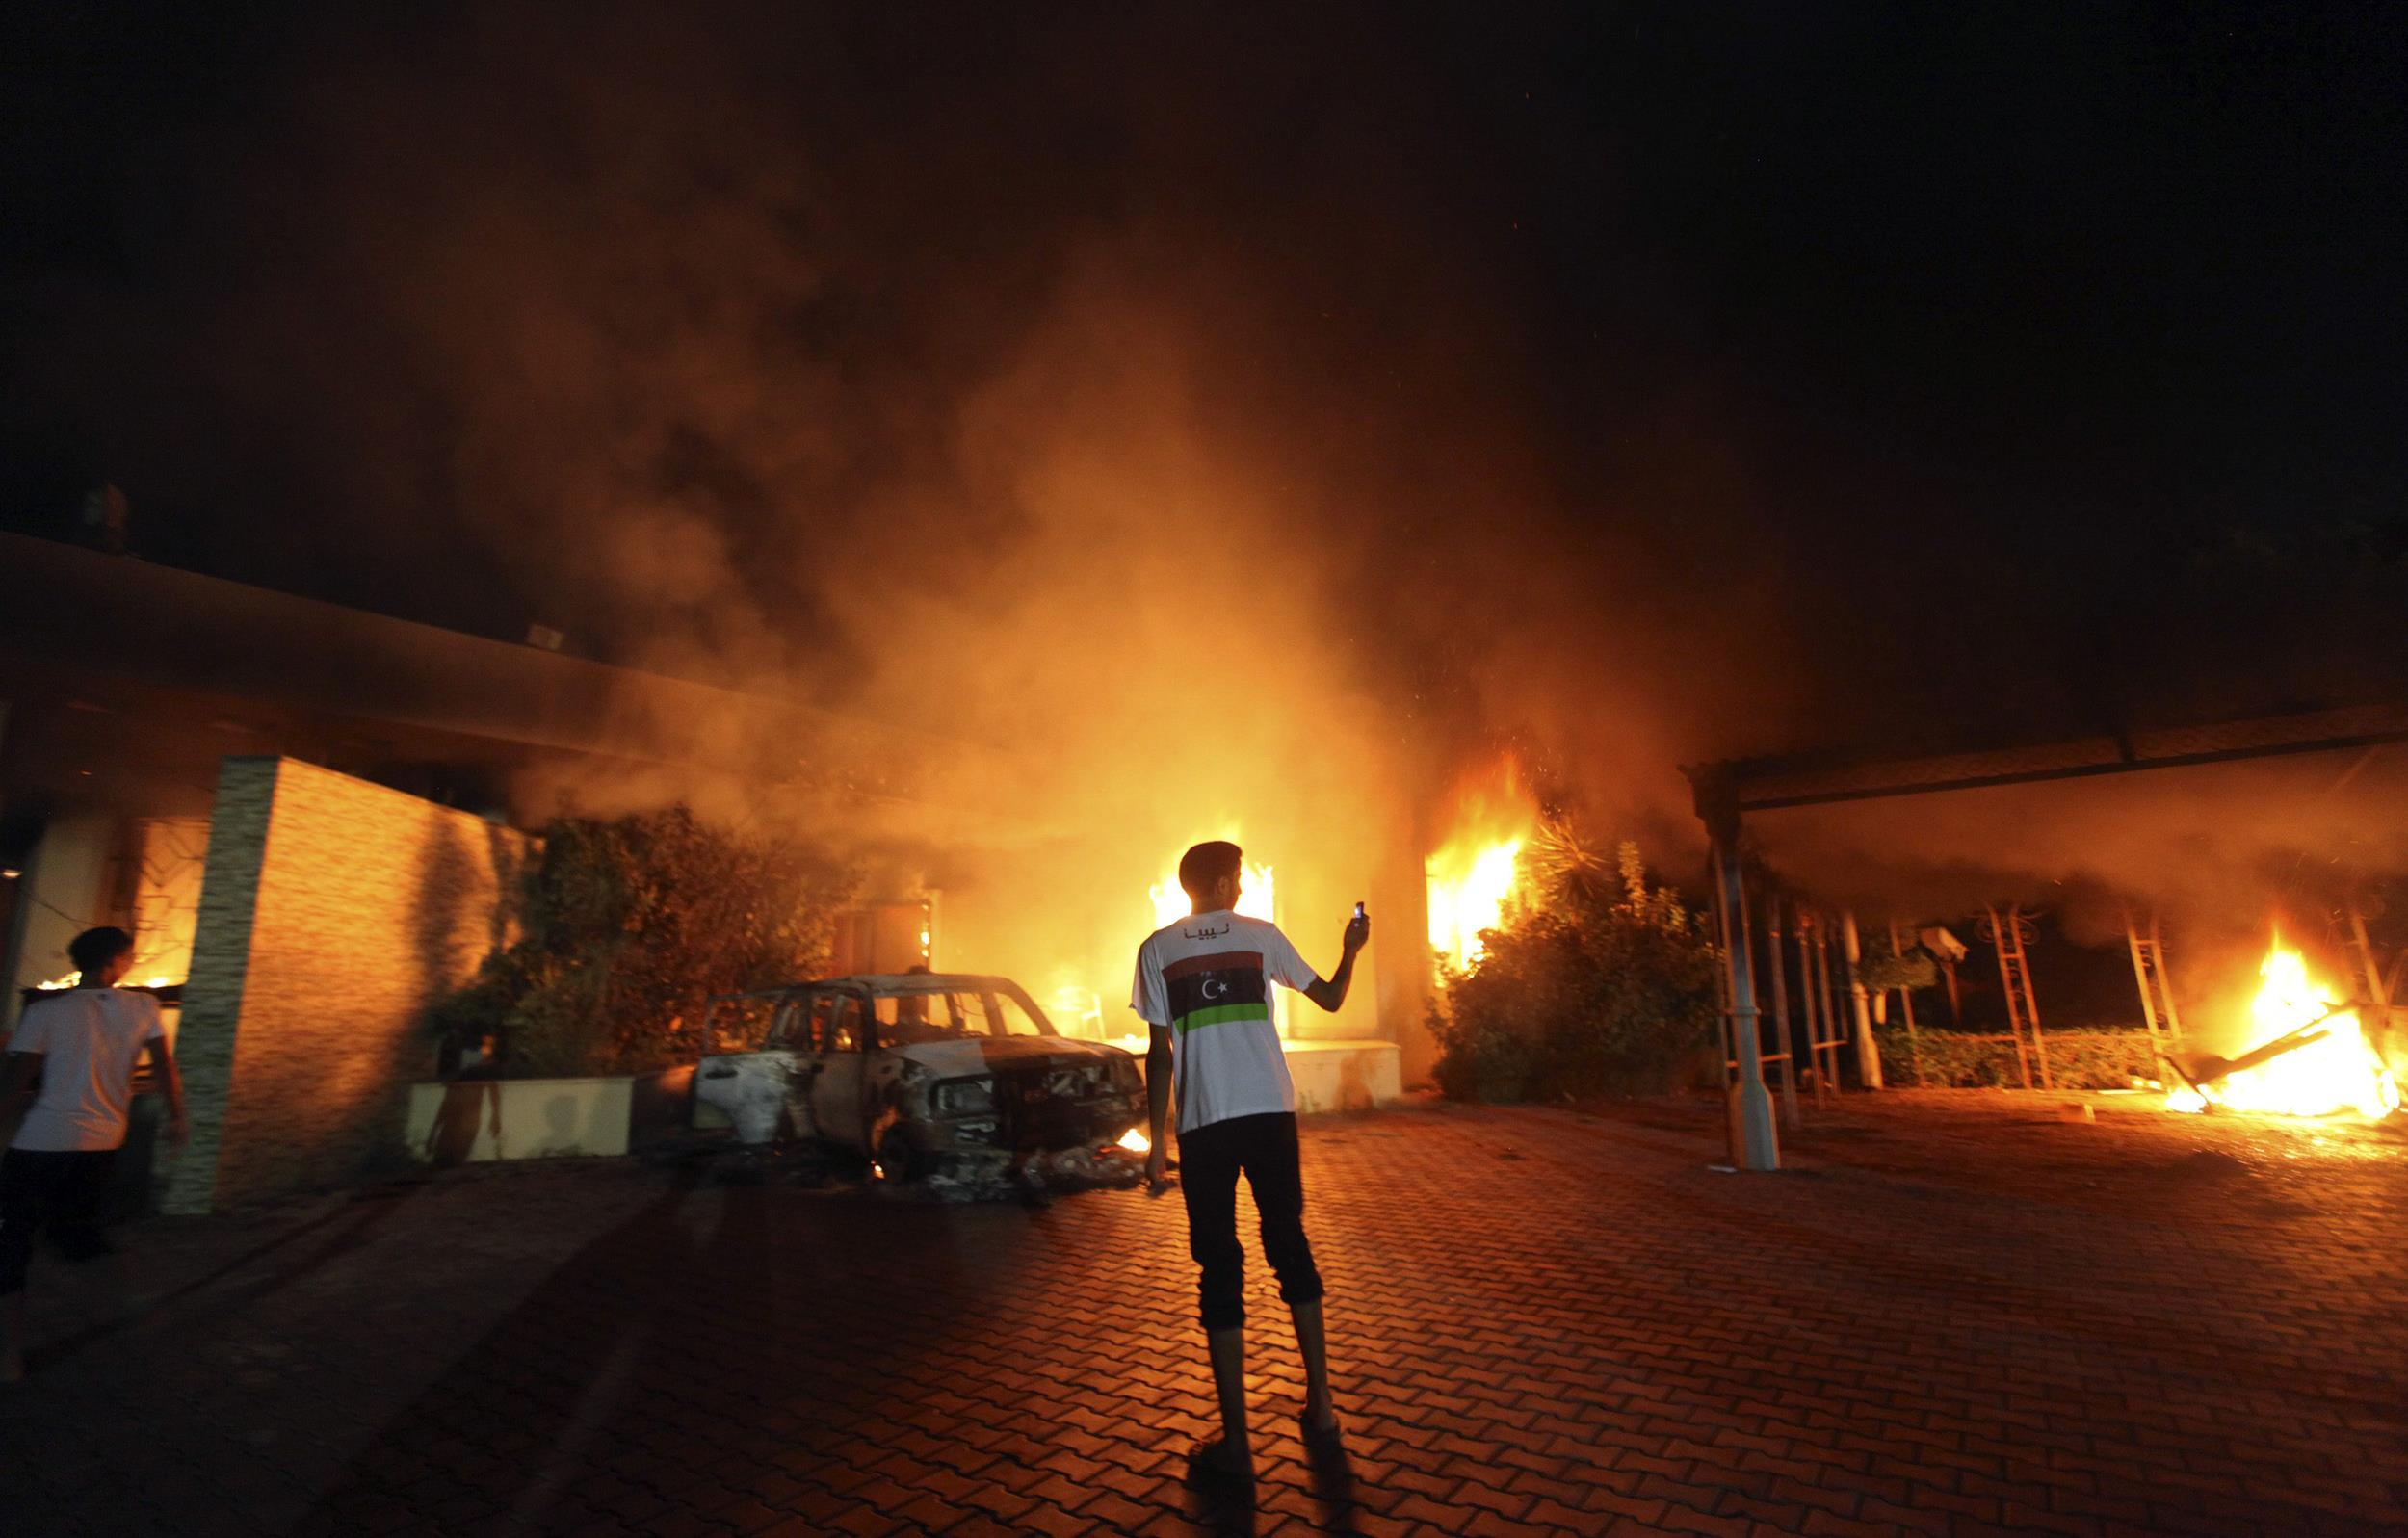 Image: The U.S. Consulate in Benghazi is seen in flames on Setp. 11, 2012.